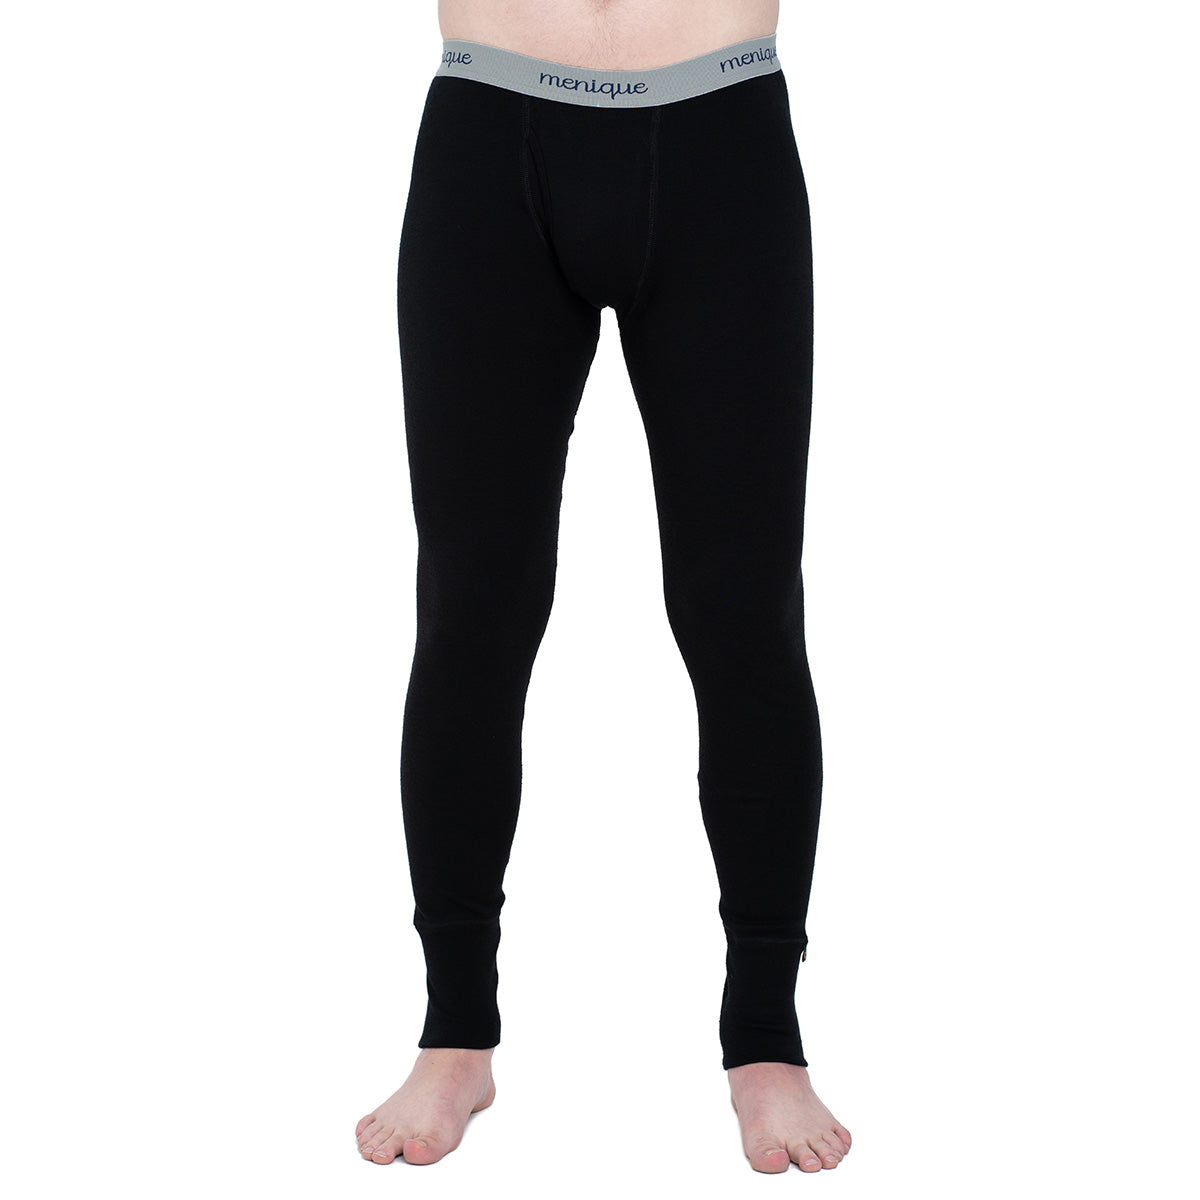 menique Men's Merino 250 Pants RB Black Color